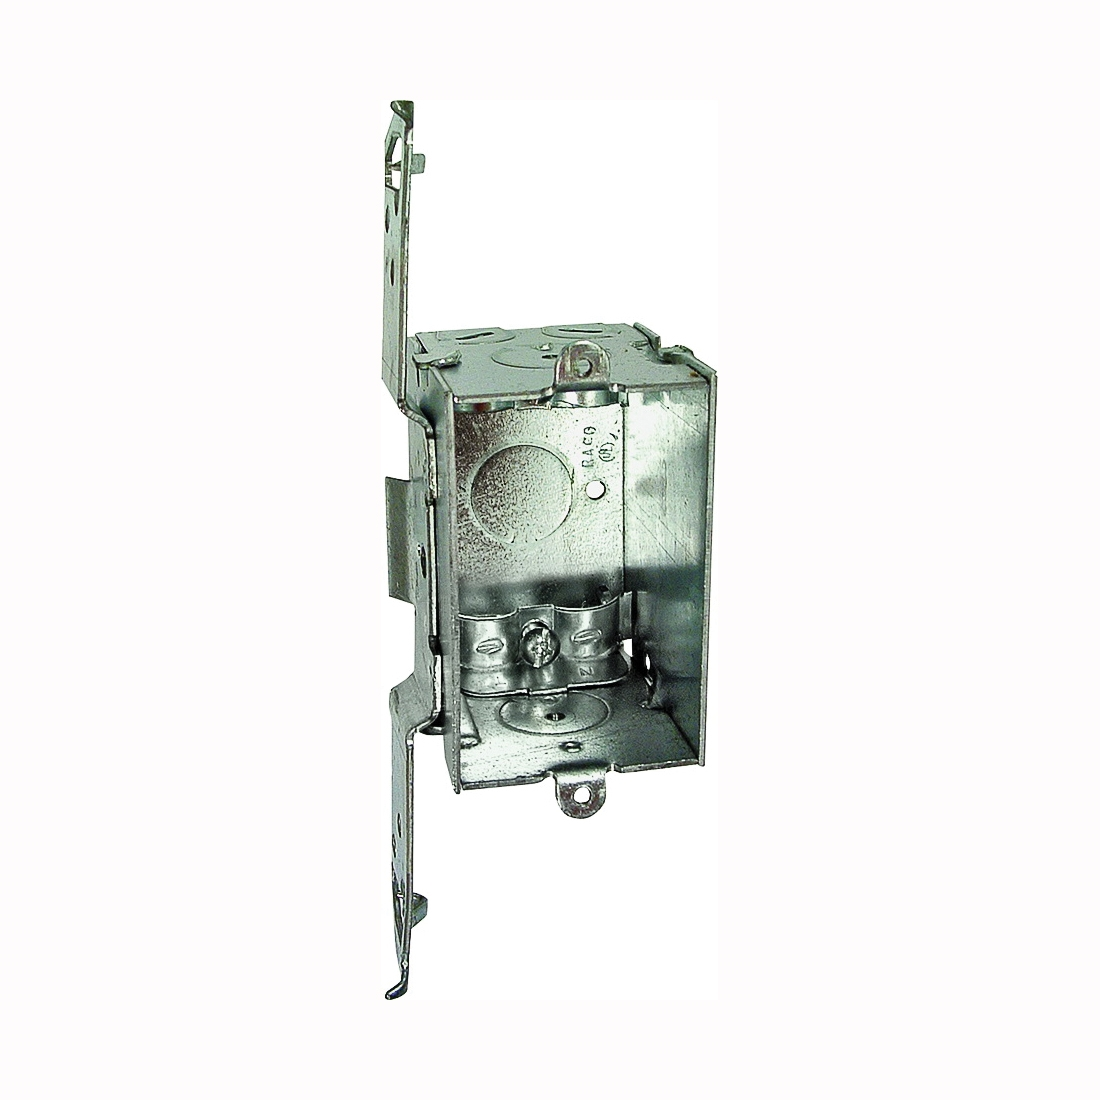 Picture of Orbit 6358469 Switch Box, 1-Gang, 7-Knockout, 1/2 in Knockout, Steel, Galvanized, Bracket Mounting